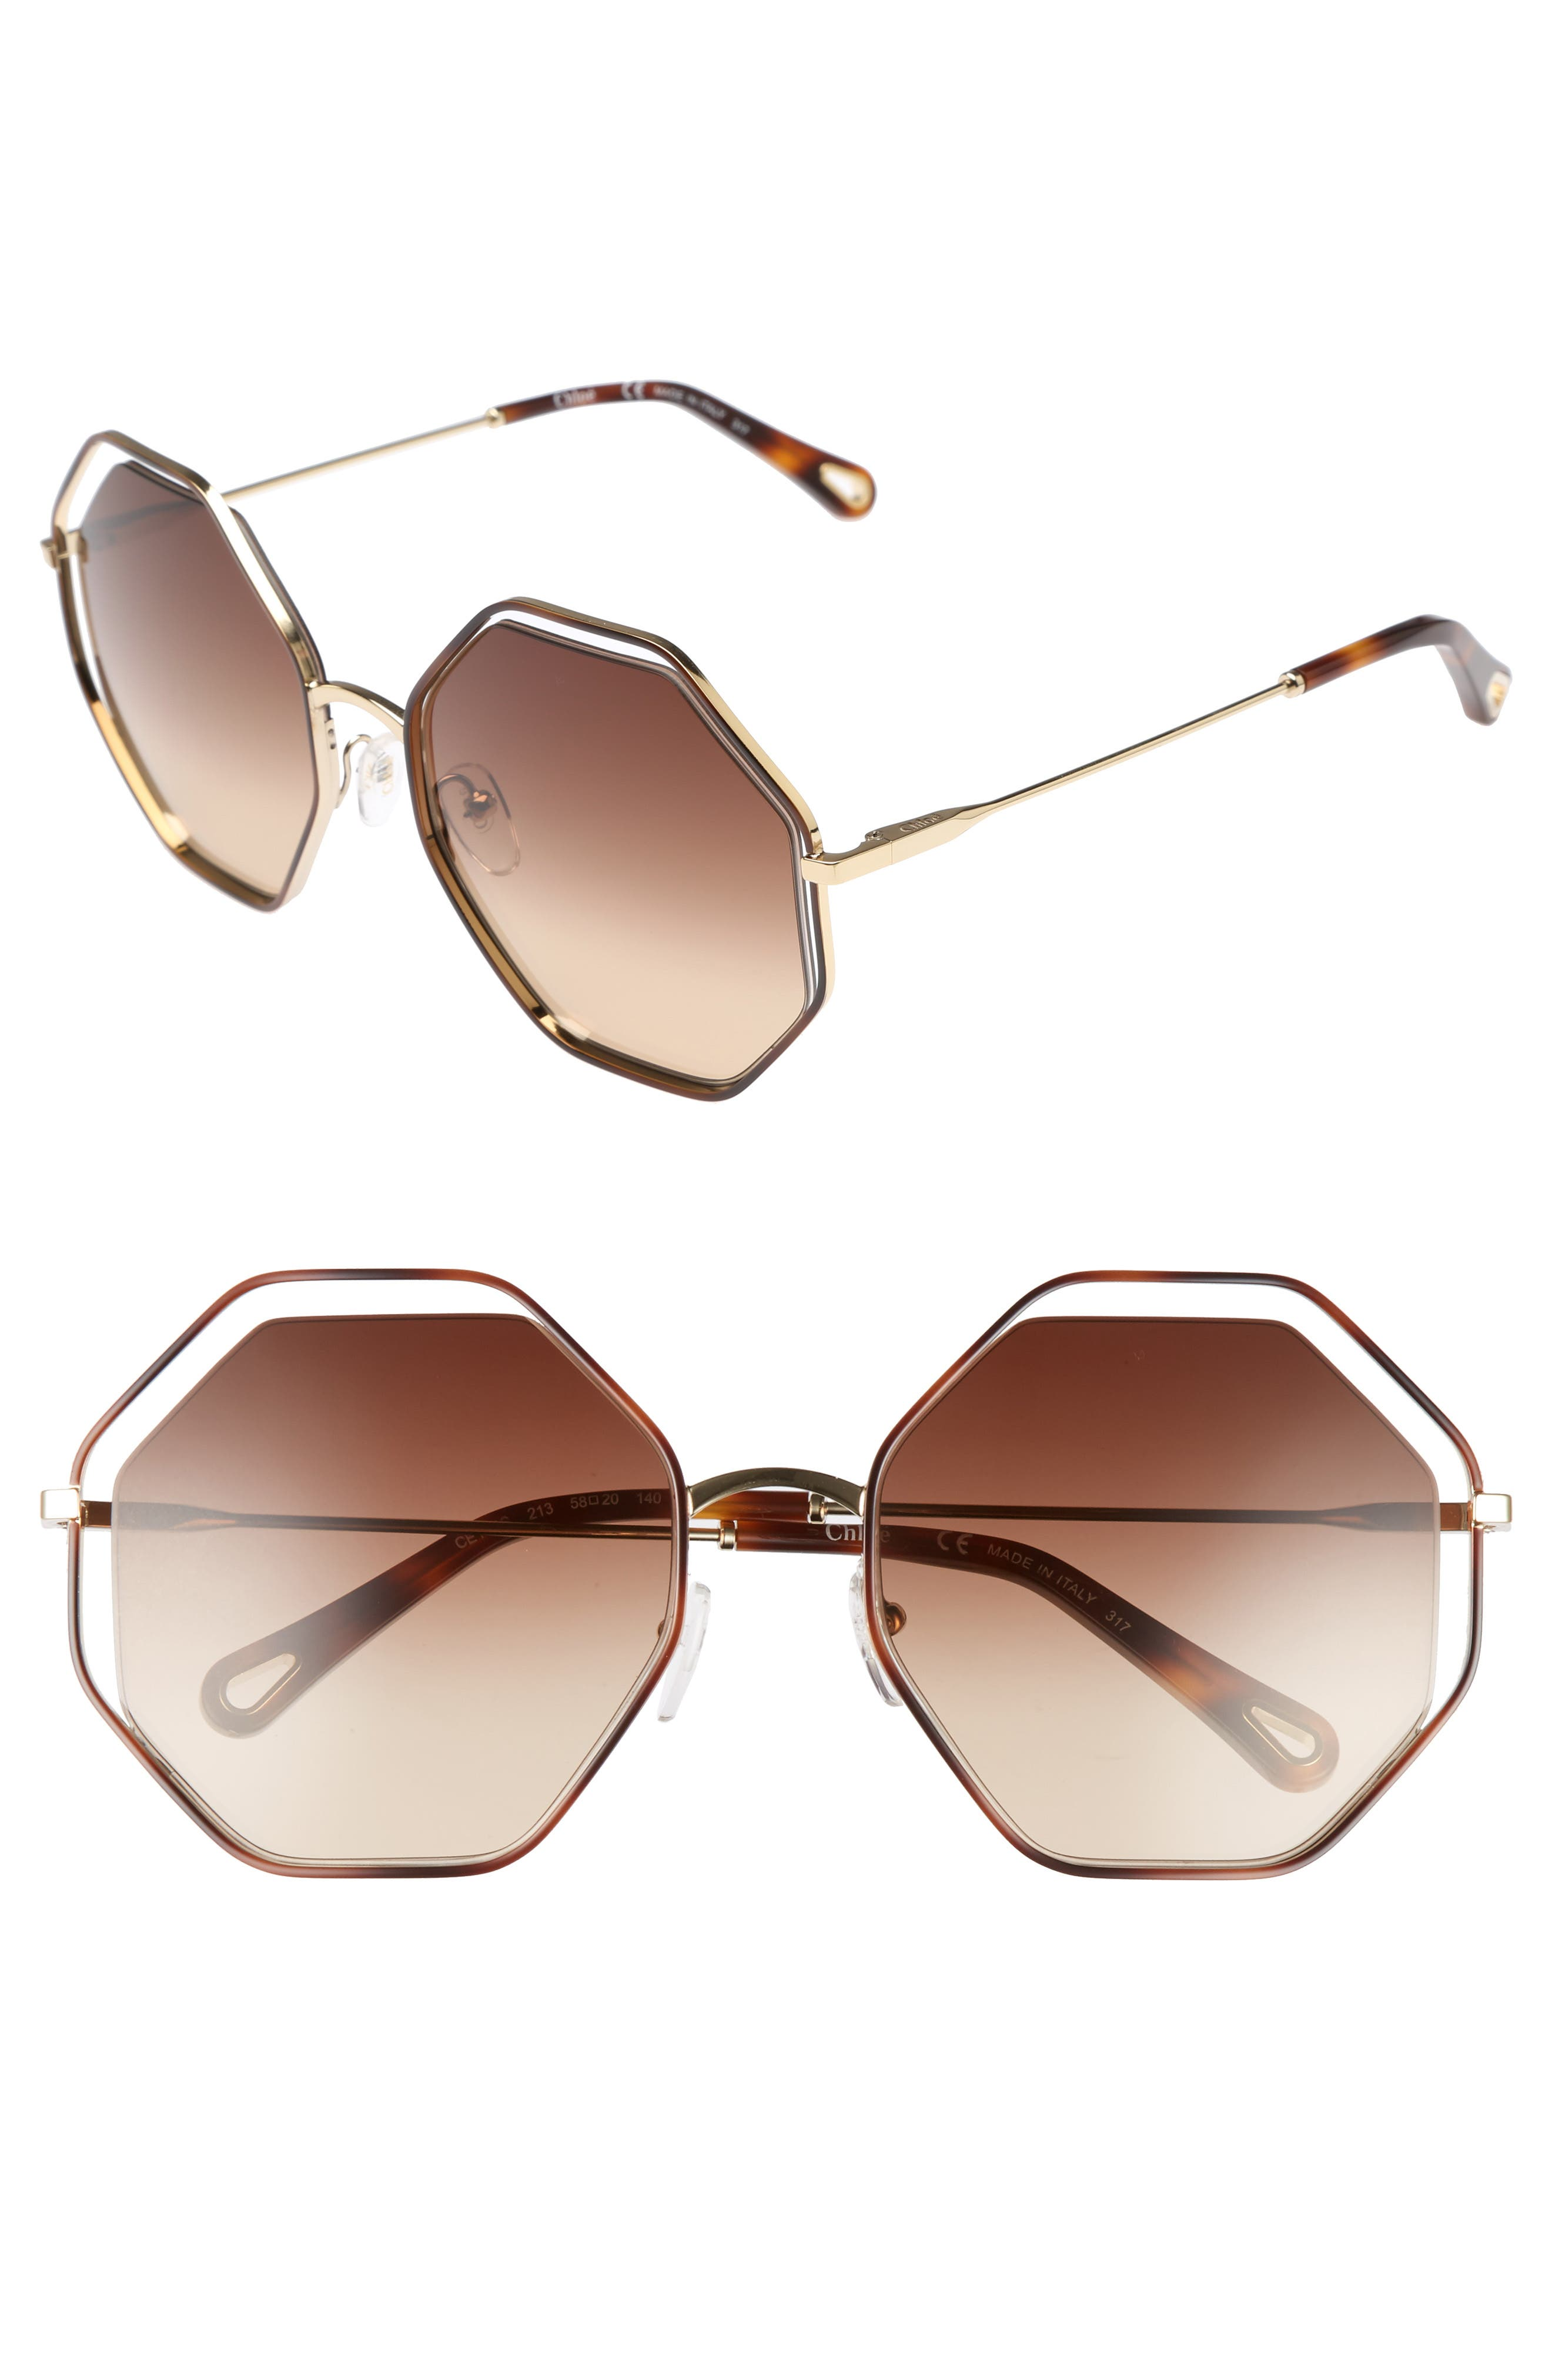 d9c5de6a9f7ebe Chloé Sunglasses for Women